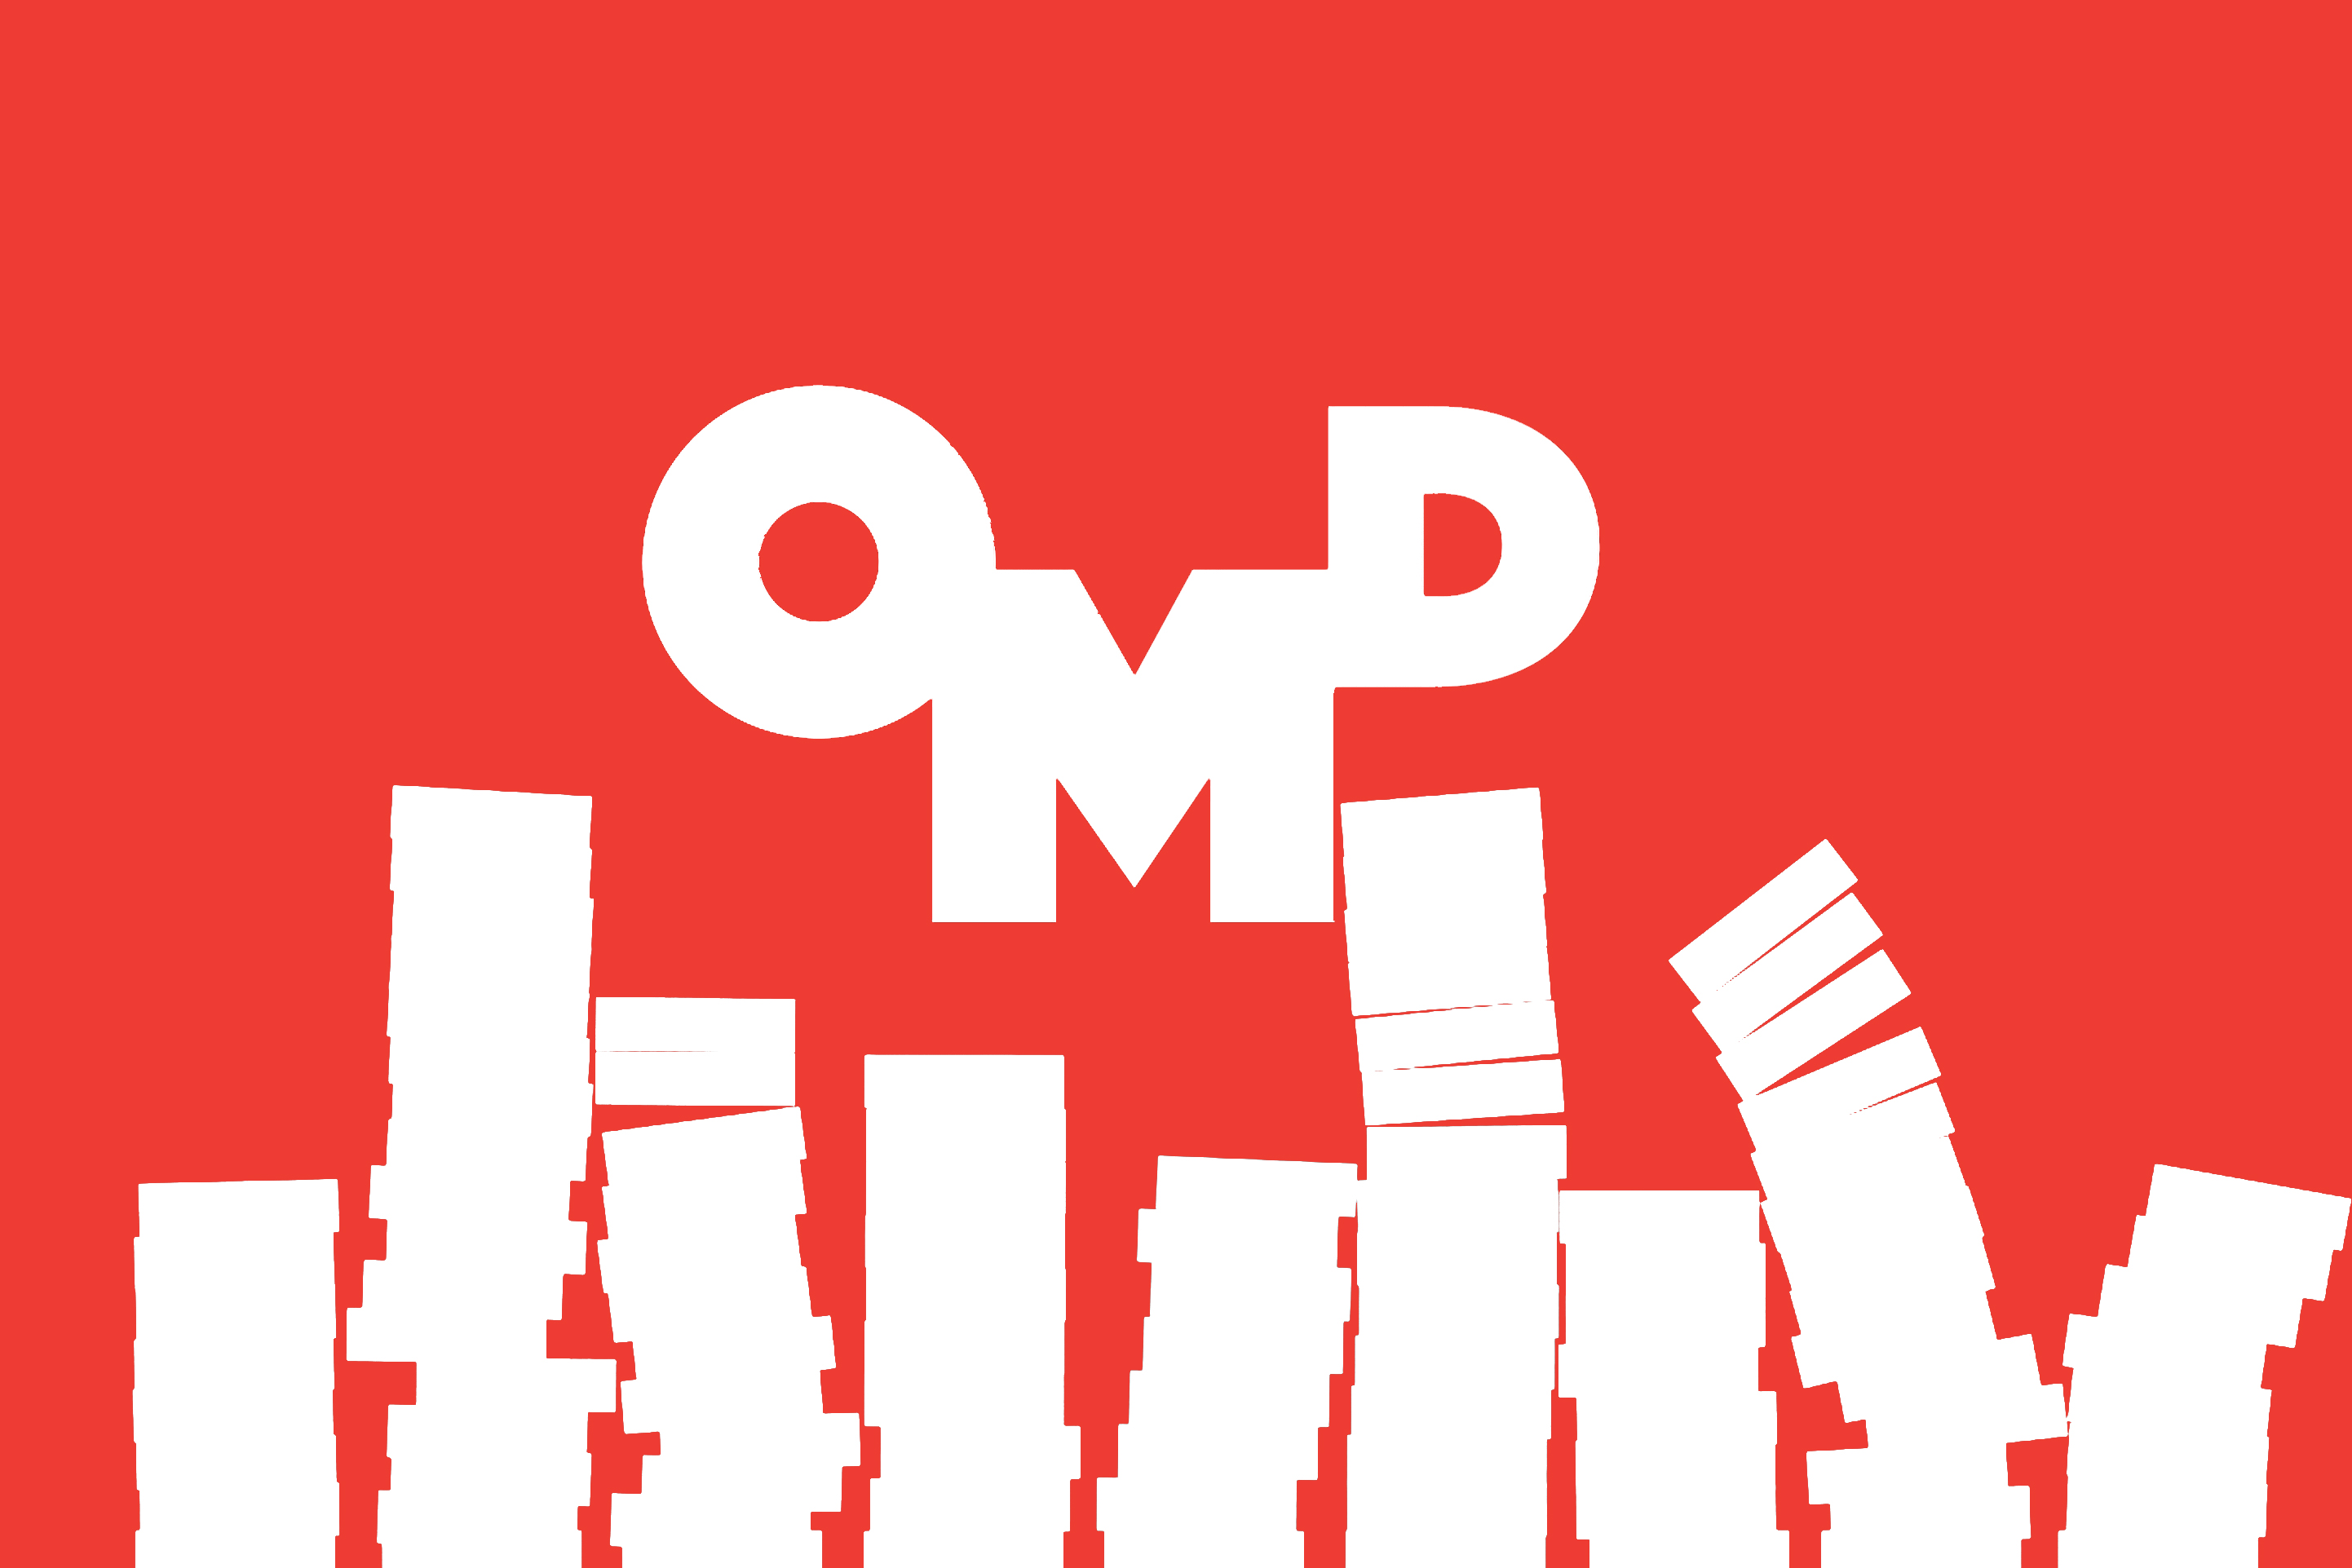 Media agency OMD cuts regional president roles as it streamlines operations to become 'borderless'